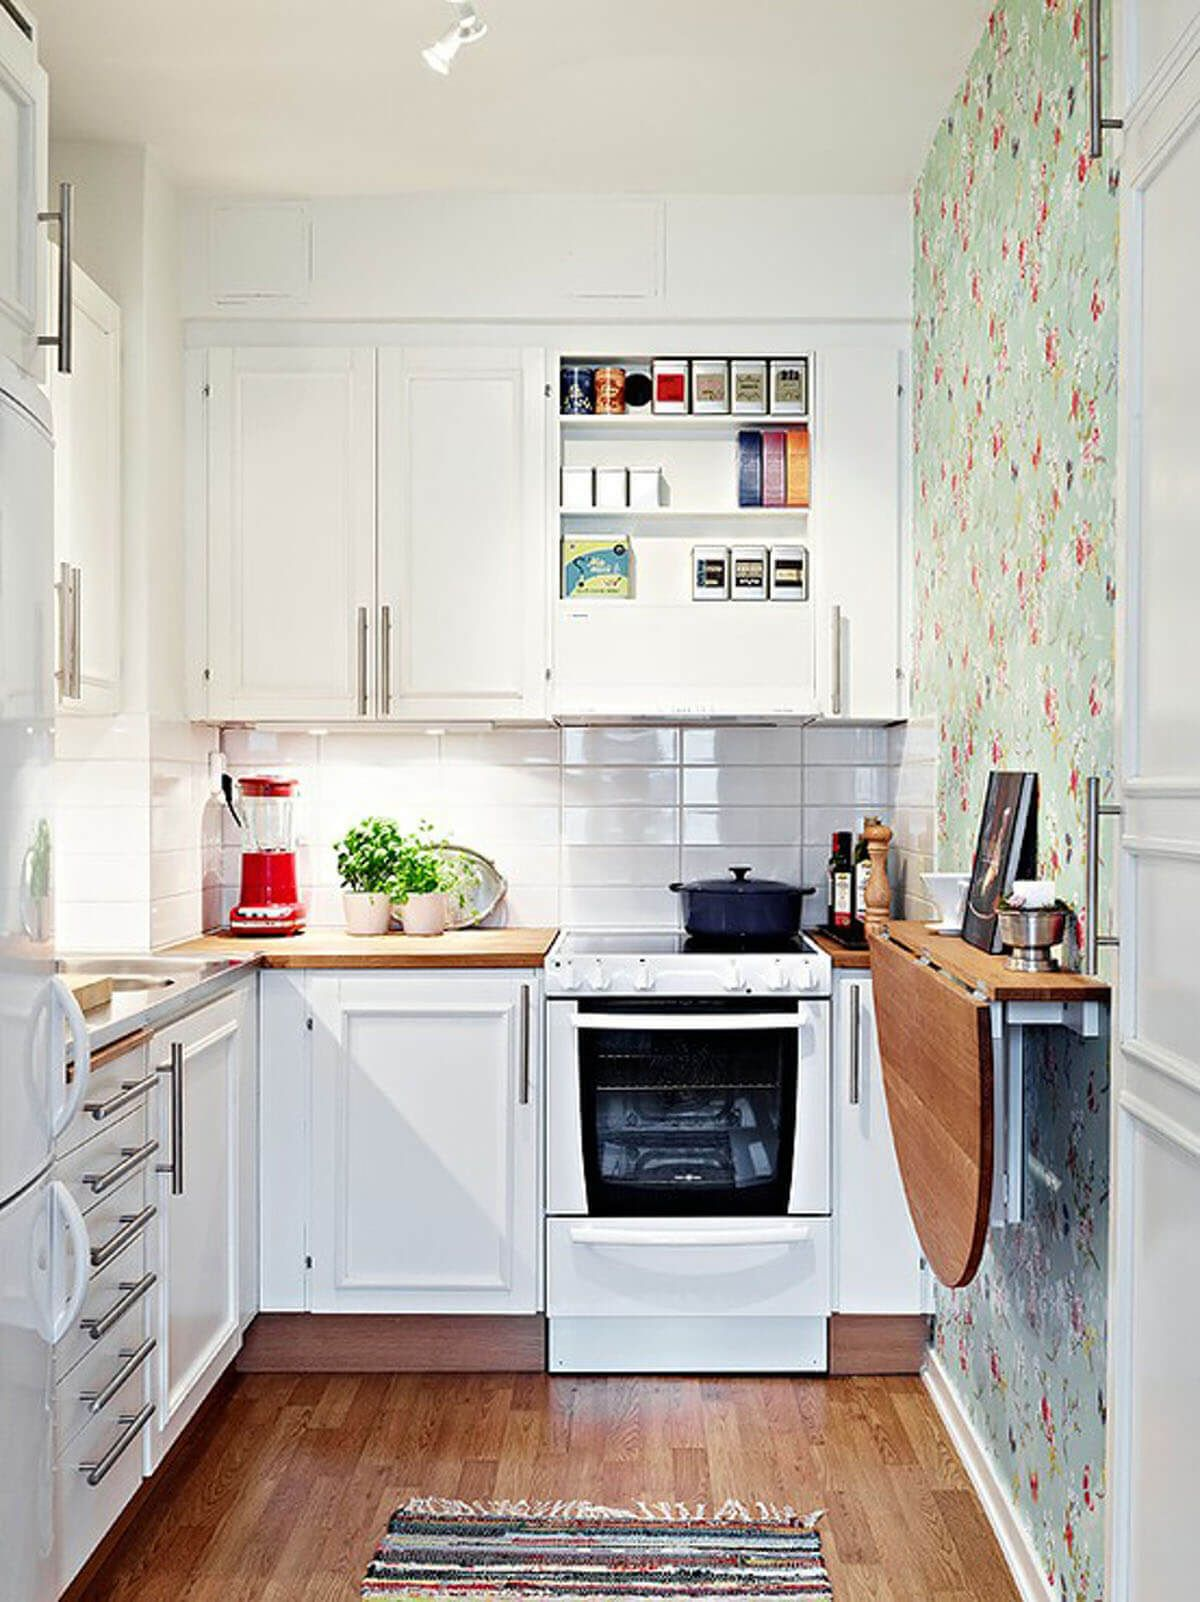 30 Nifty Small Kitchen Design And Decor Ideas To Transform Your Cooking Space Small Space Kitchen Small Kitchen Decor Kitchen Design Small